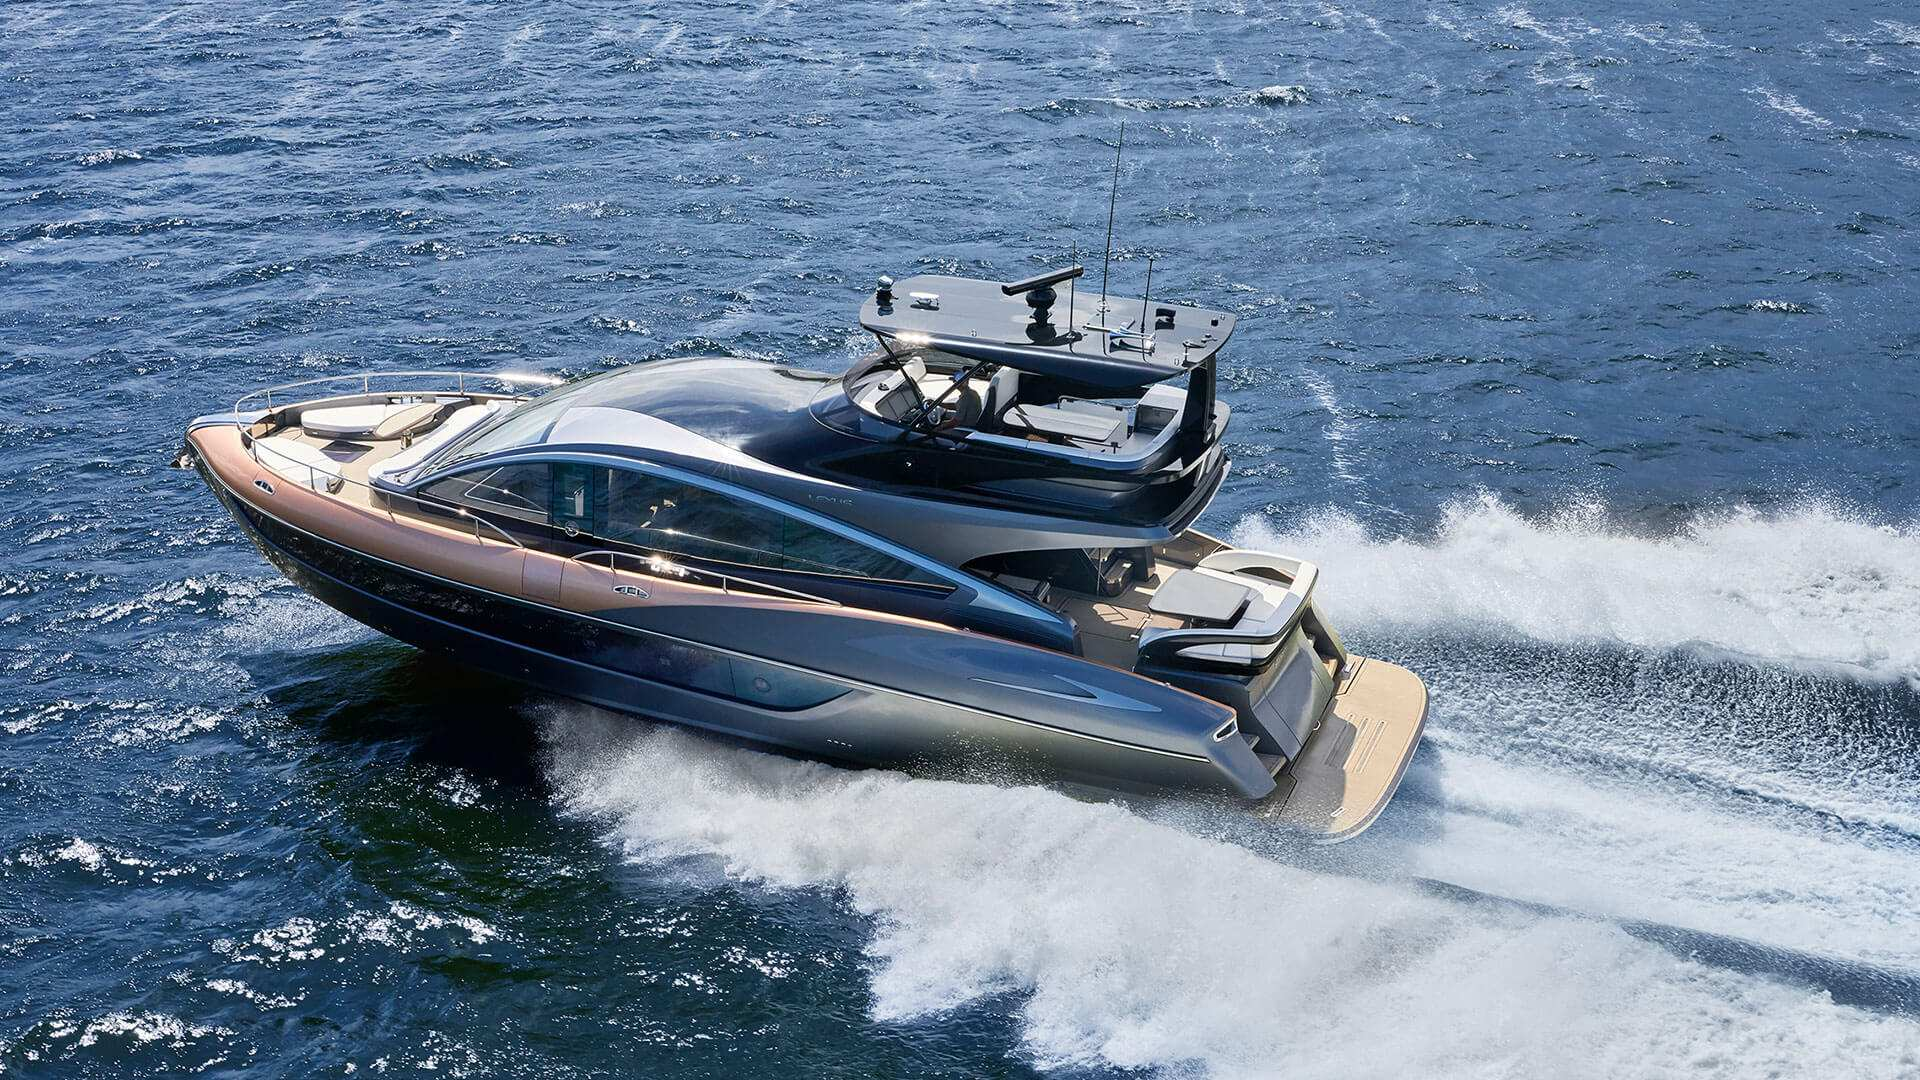 2020 lexus yacht ly 650 premiere gallery 07